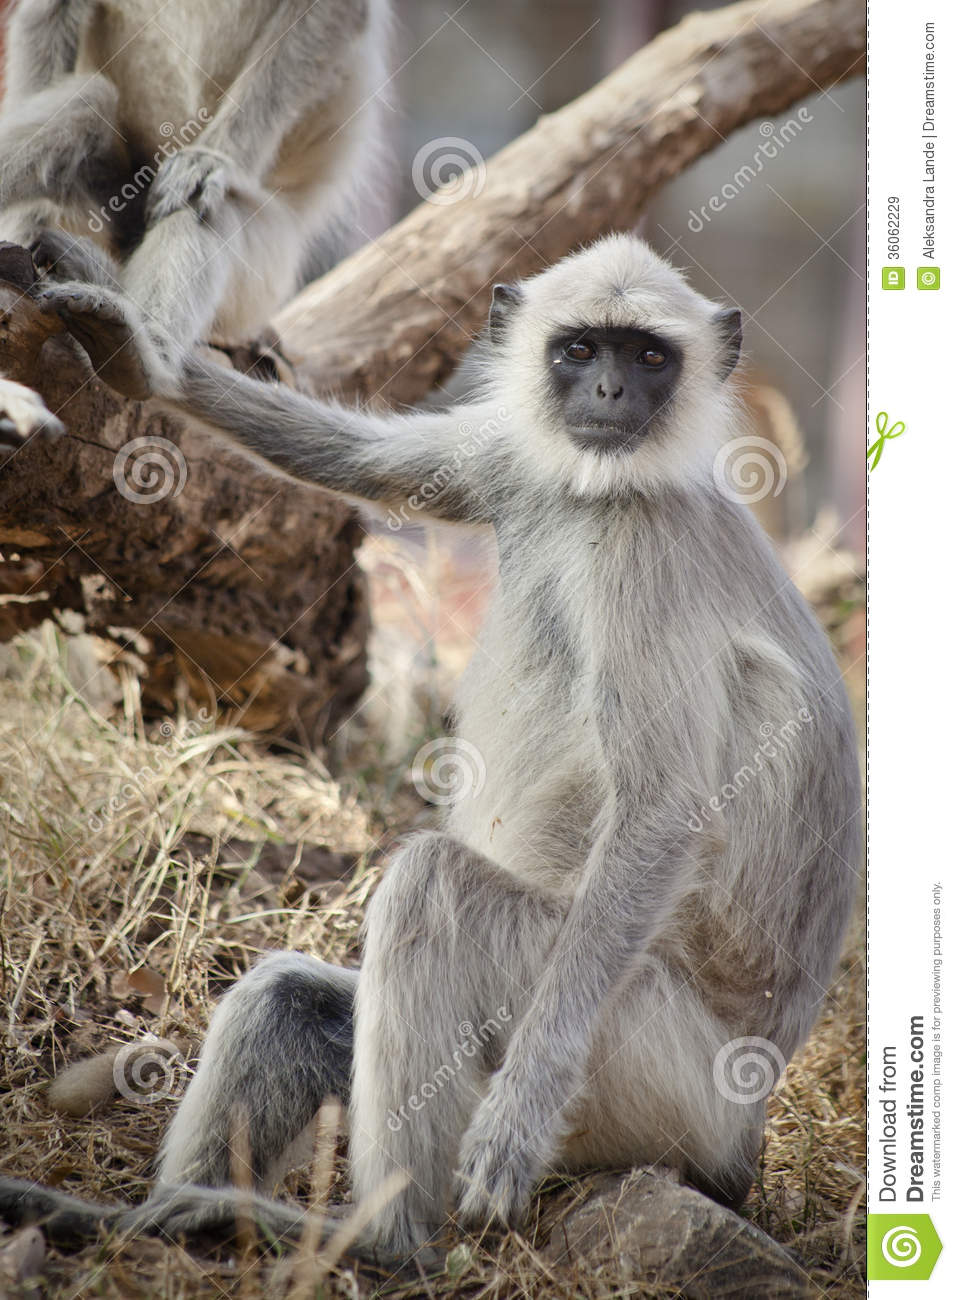 Gray Langur Also Known As Hanuman Langur Royalty Free Stock Images.